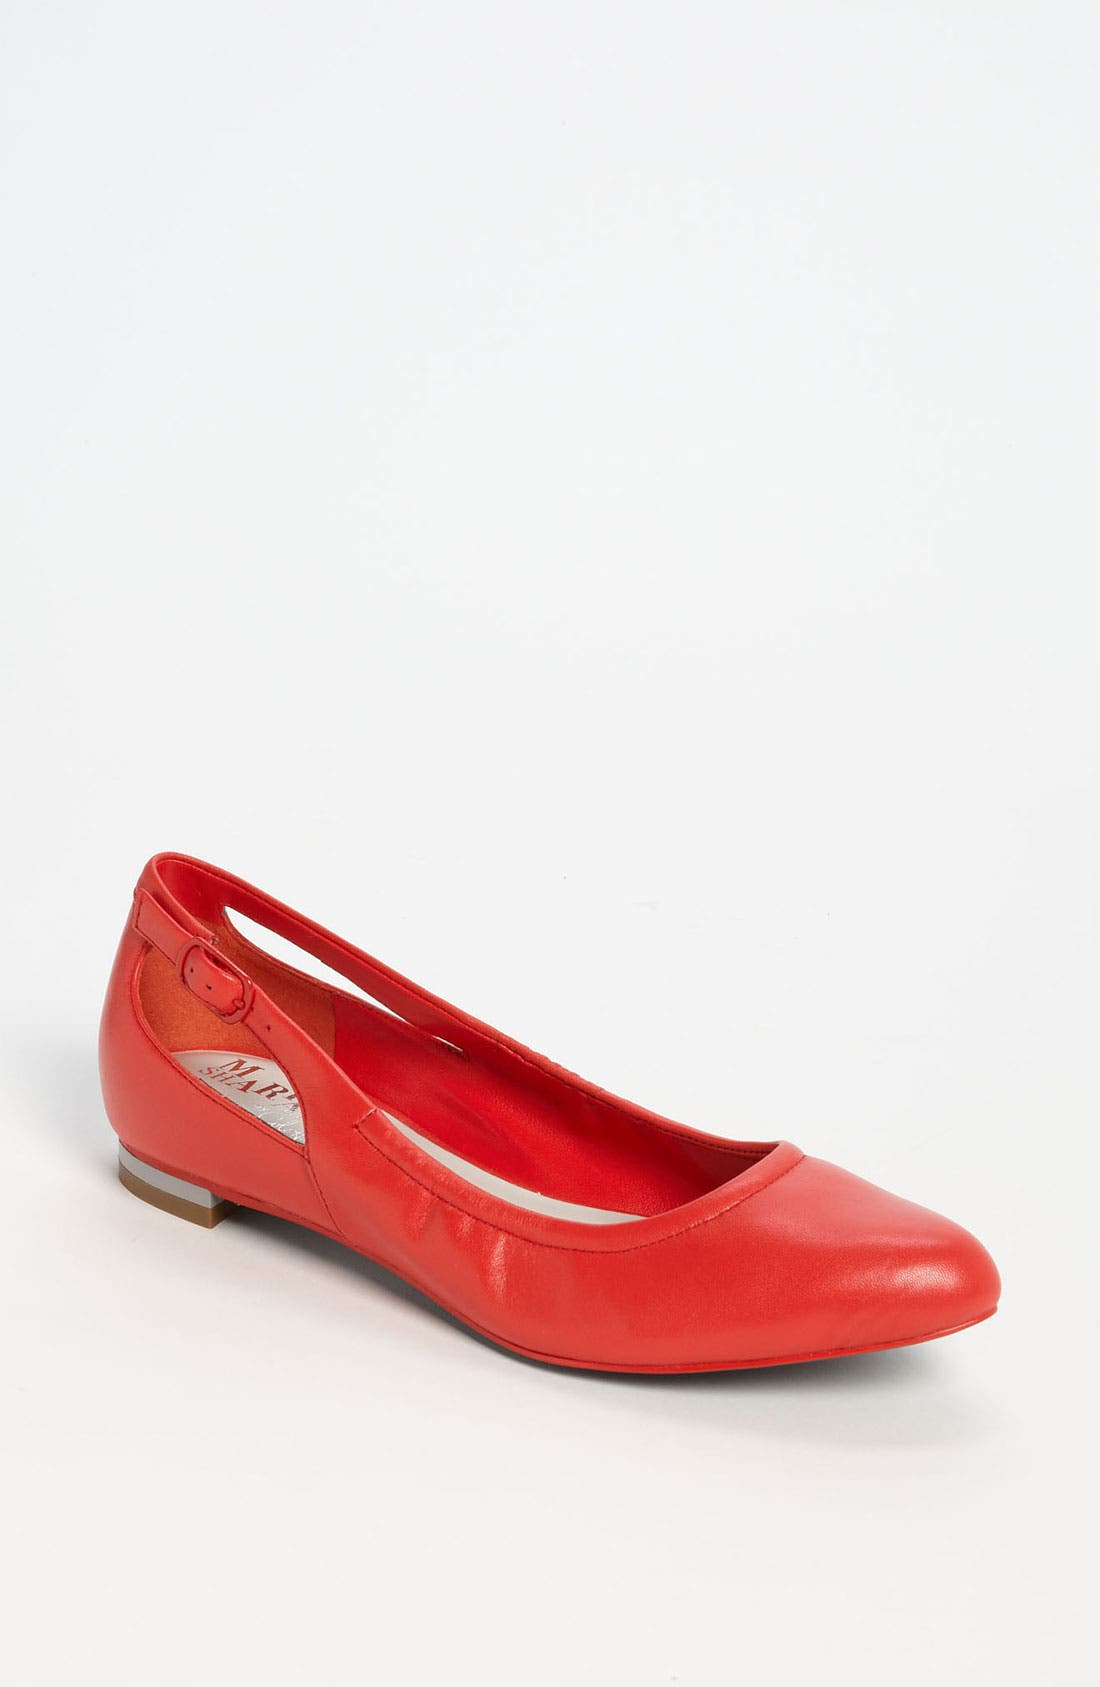 Alternate Image 1 Selected - Maria Sharapova by Cole Haan 'Palisade' Ballet Flat